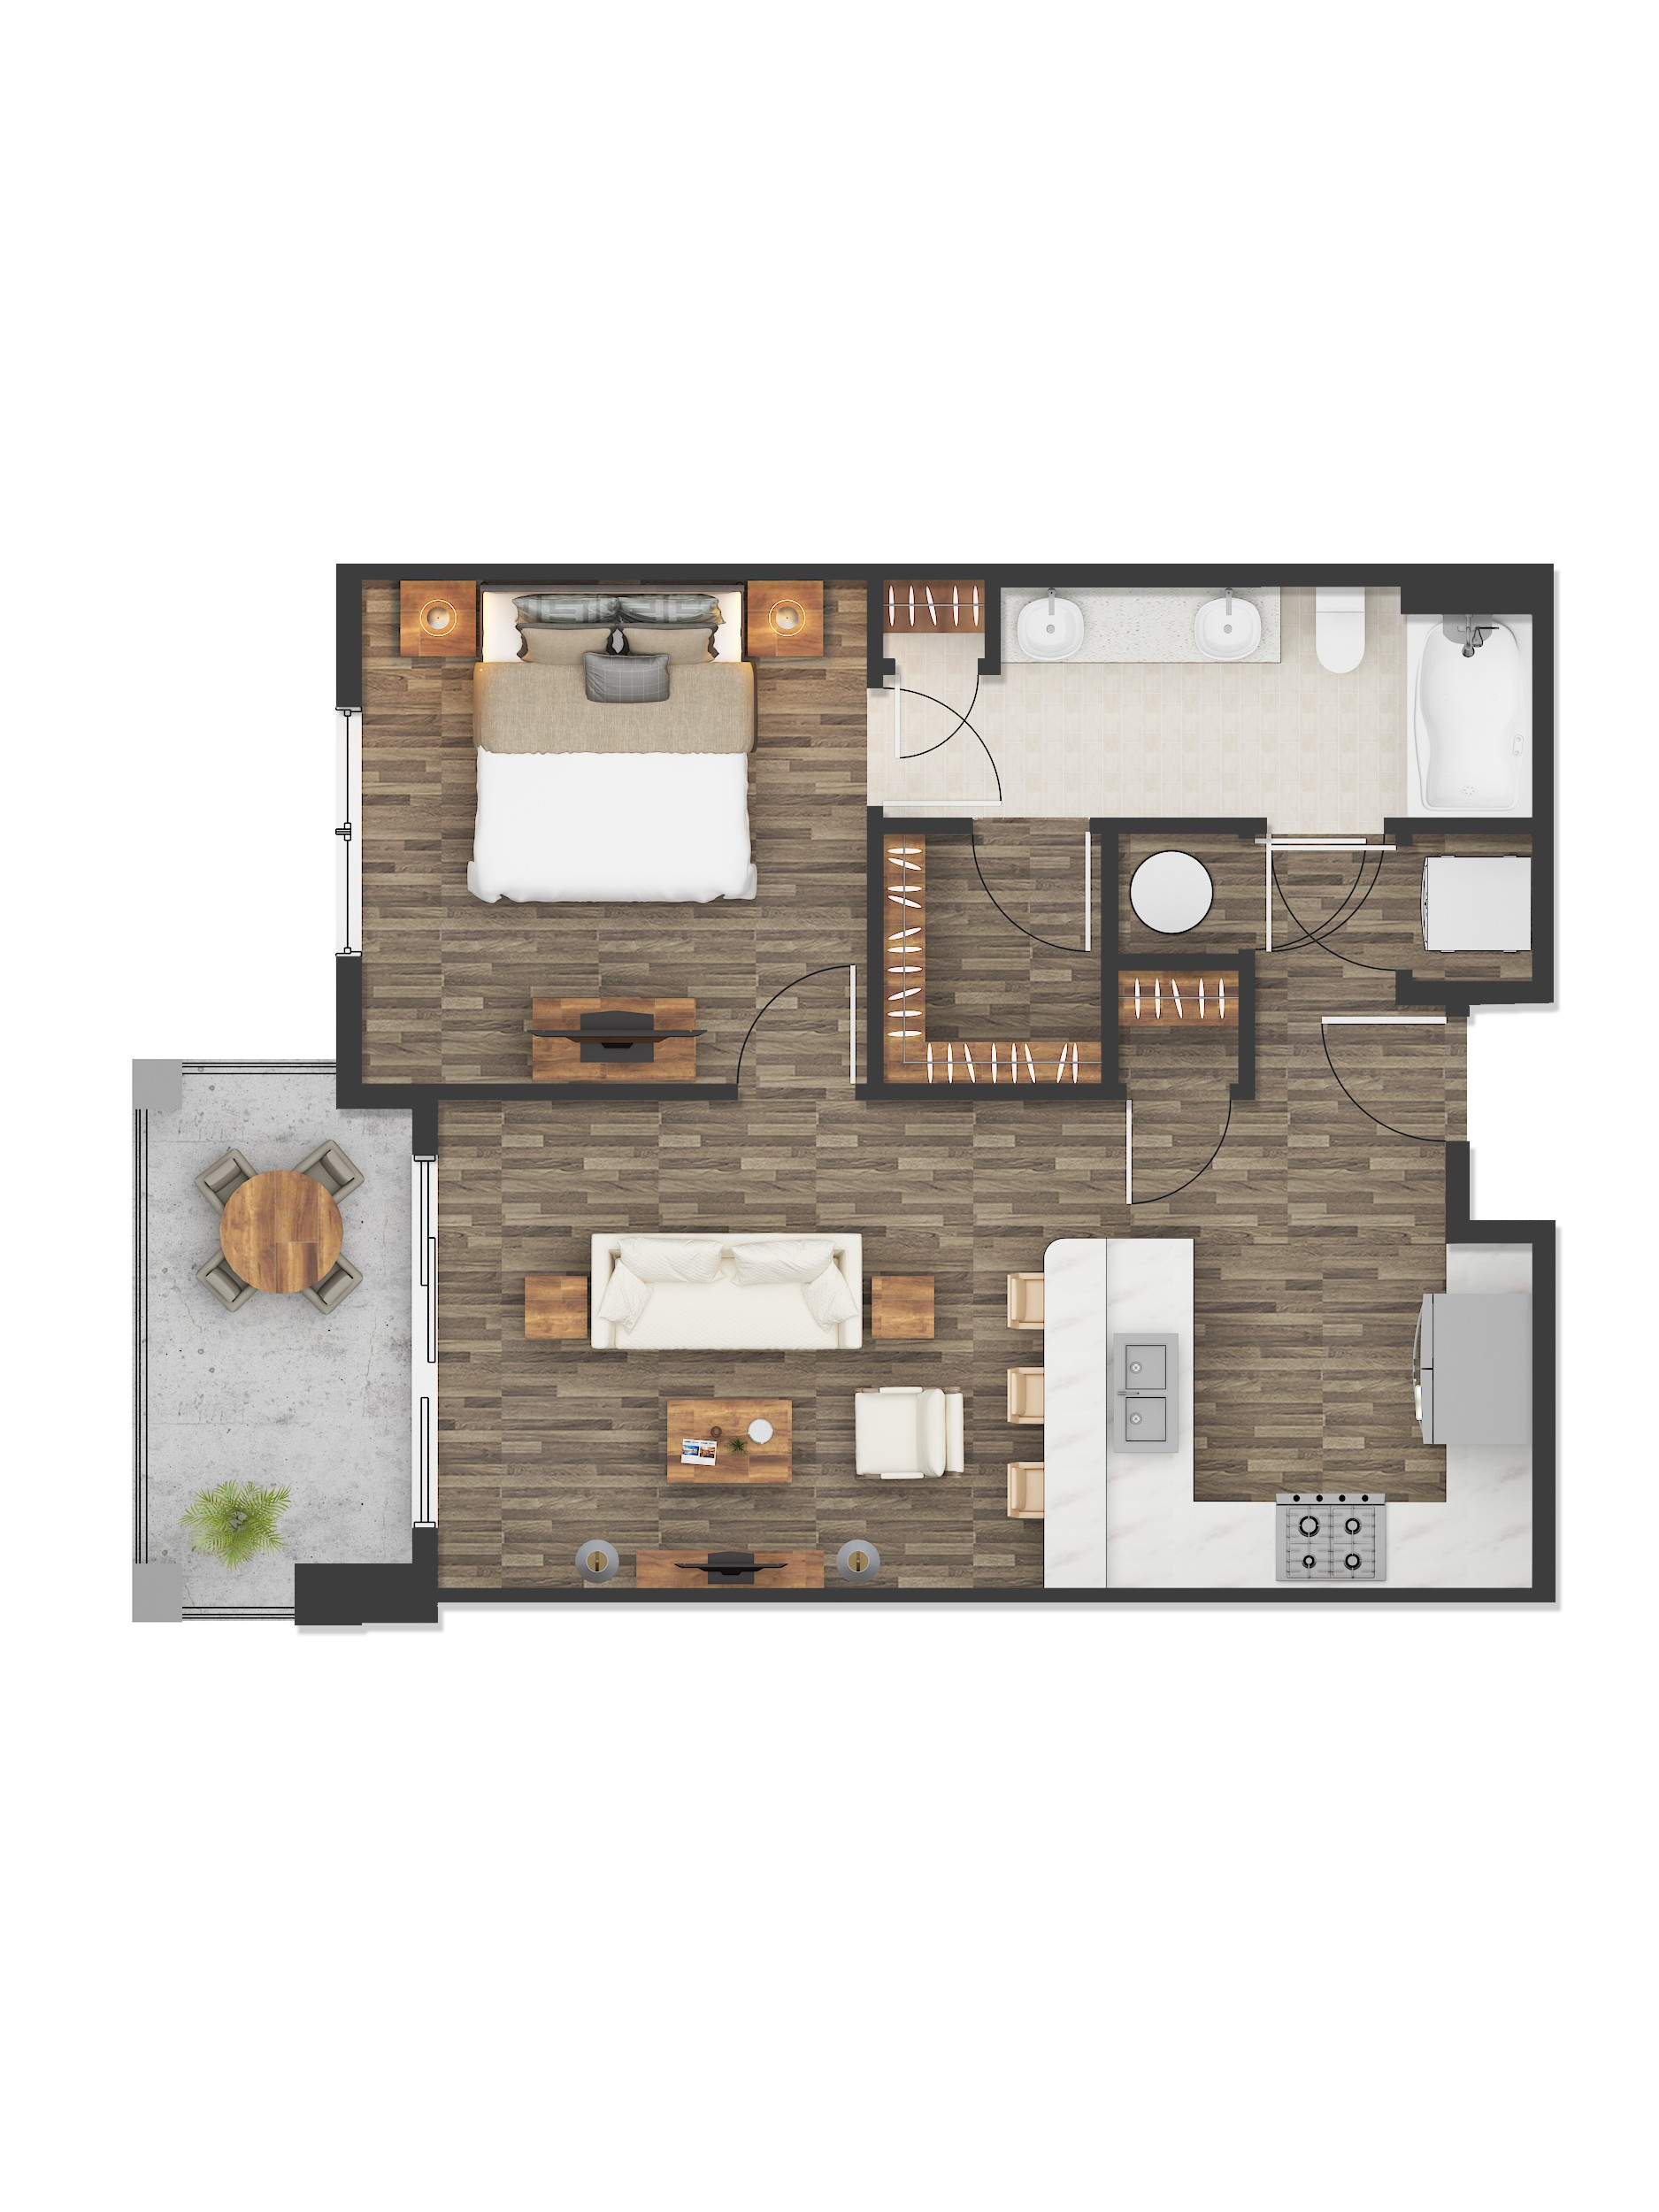 2D Floor Plan Rendering Services Houston Texas Color 2D Floor Plan Rendering Services Houston Texas by JMSDCONSULTANT